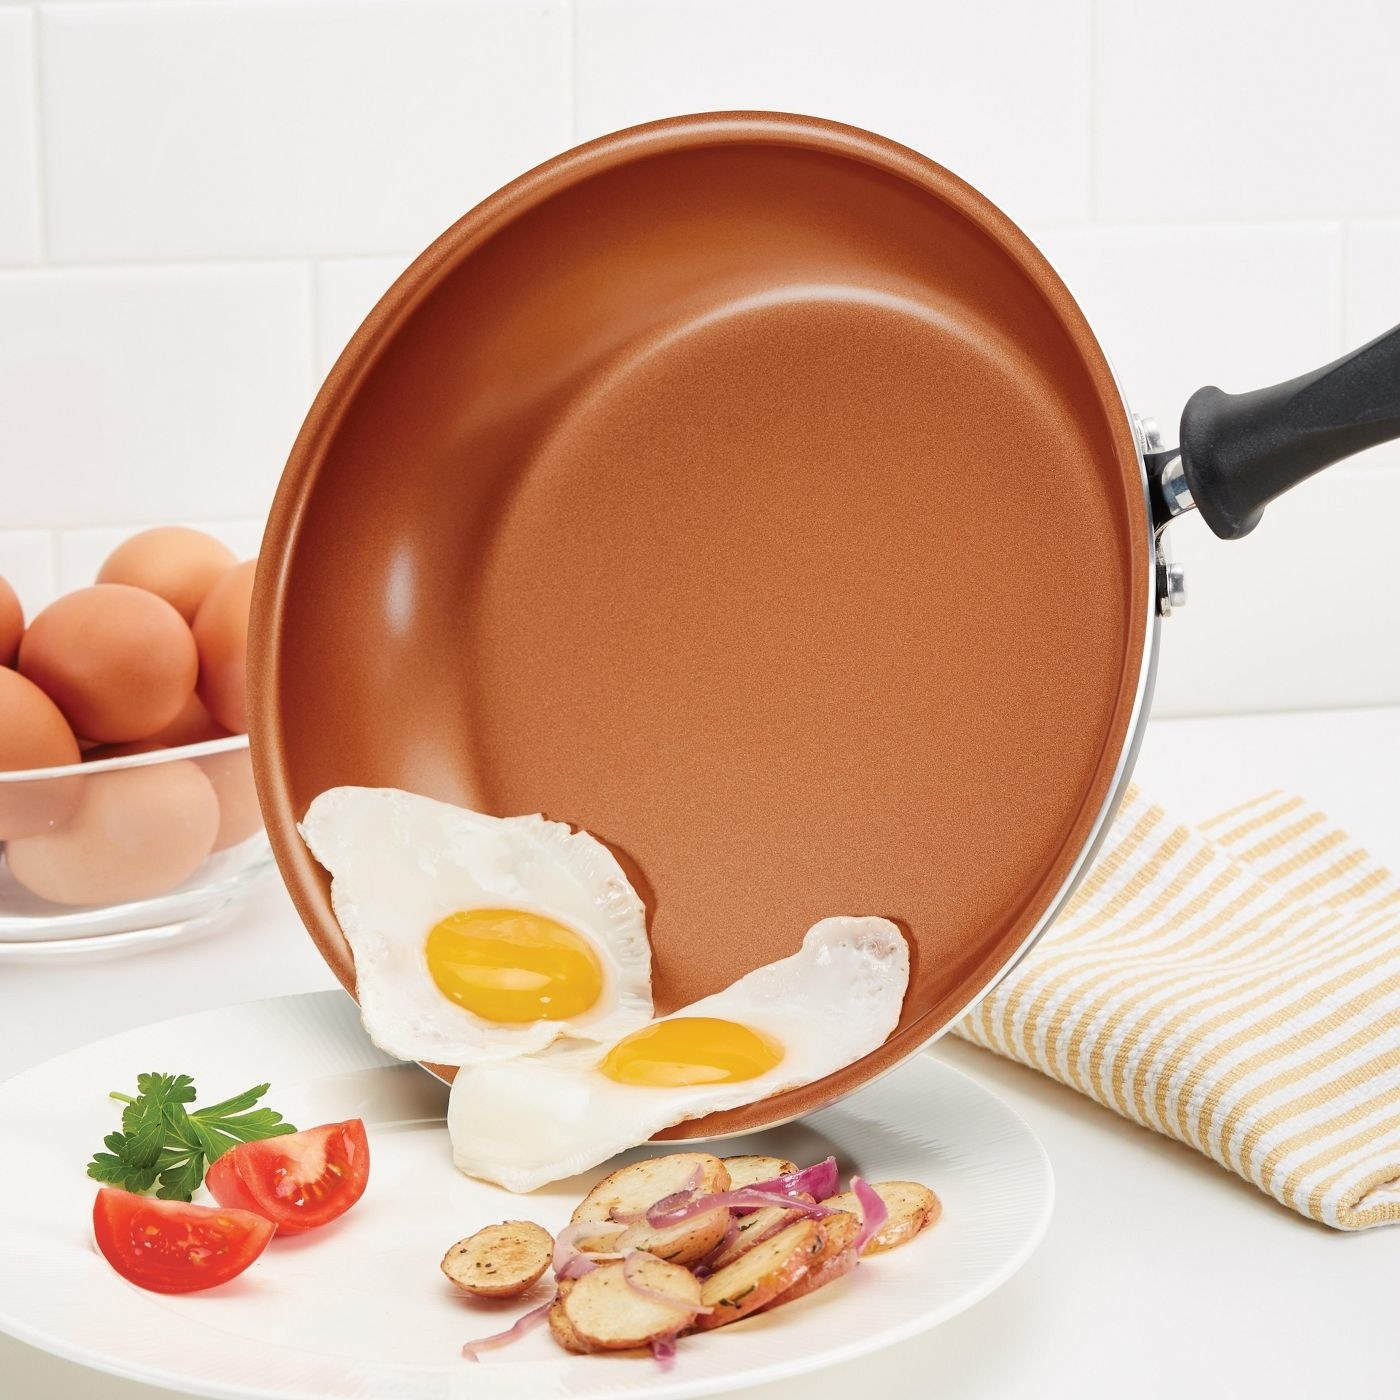 The nonstick pan with eggs easily slipping off onto a plate